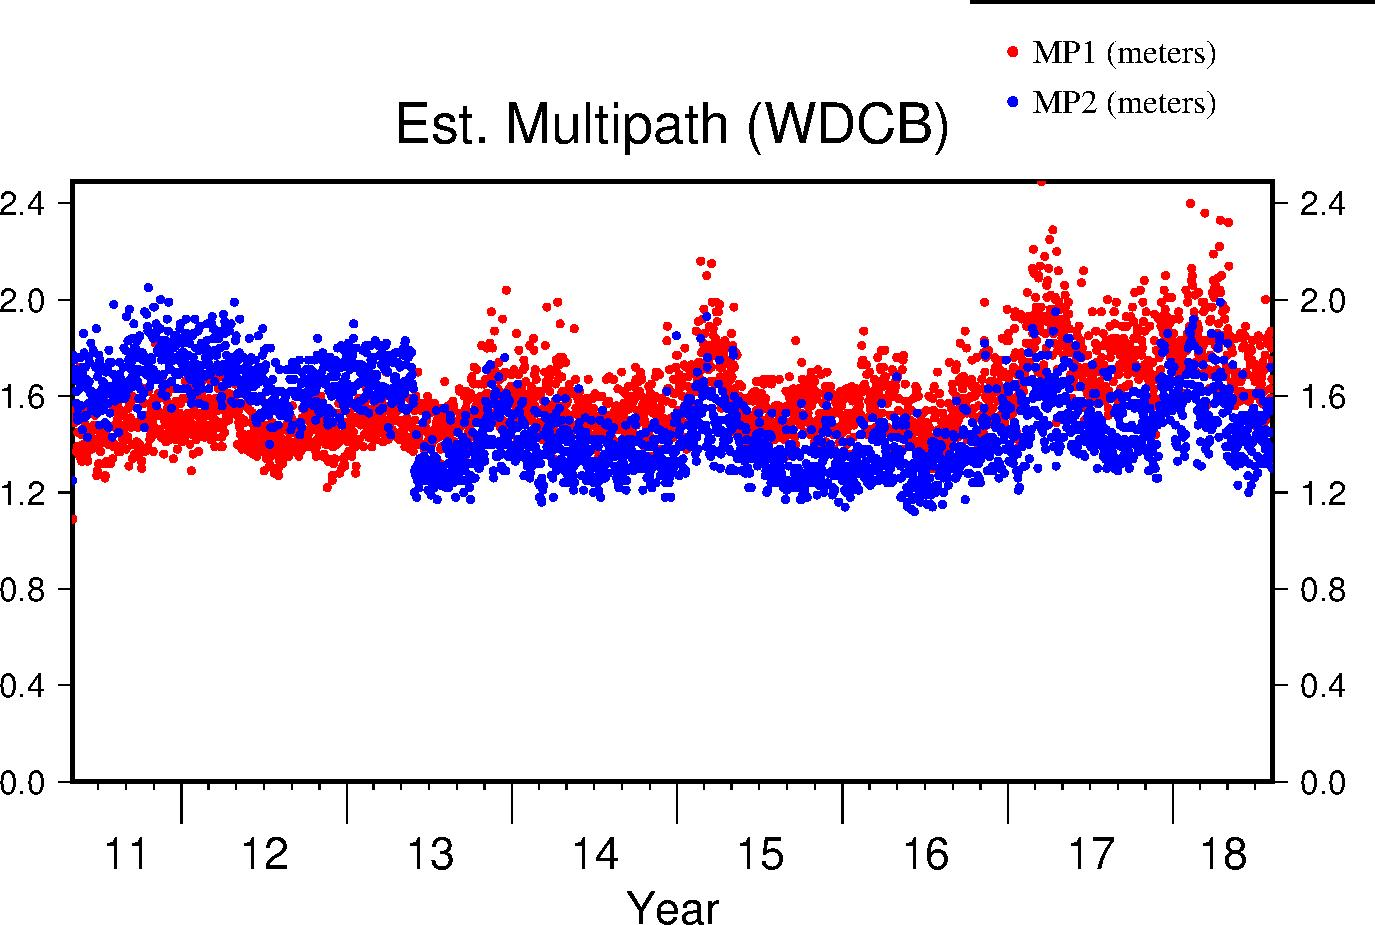 WDCB multipath lifetime